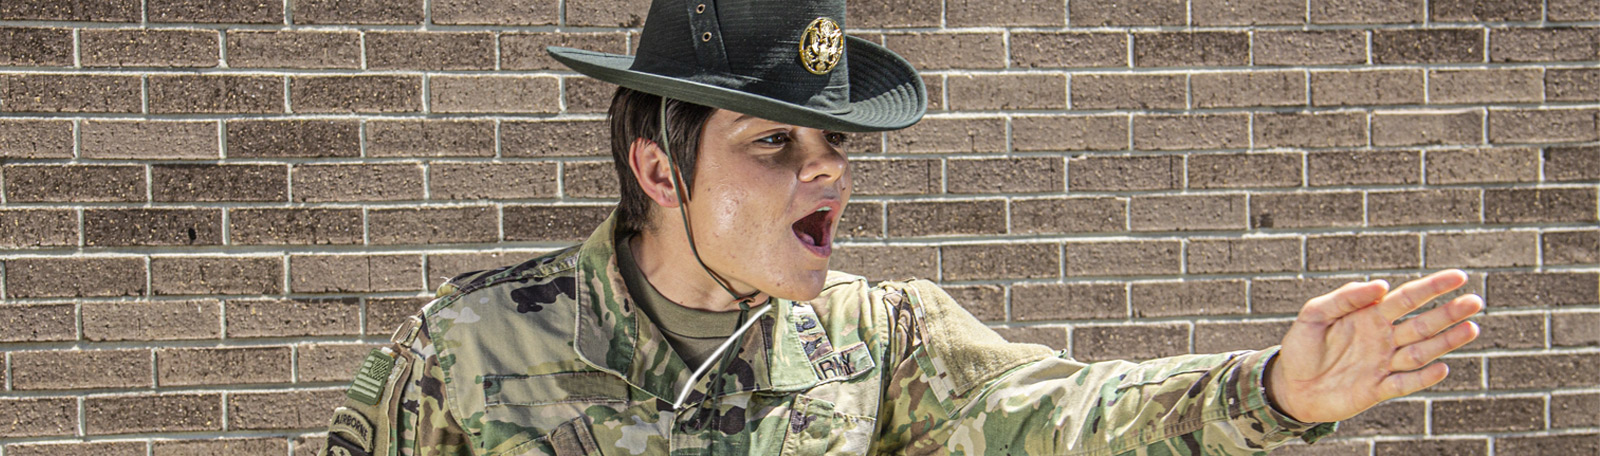 Military - Army Drill Sgt Category